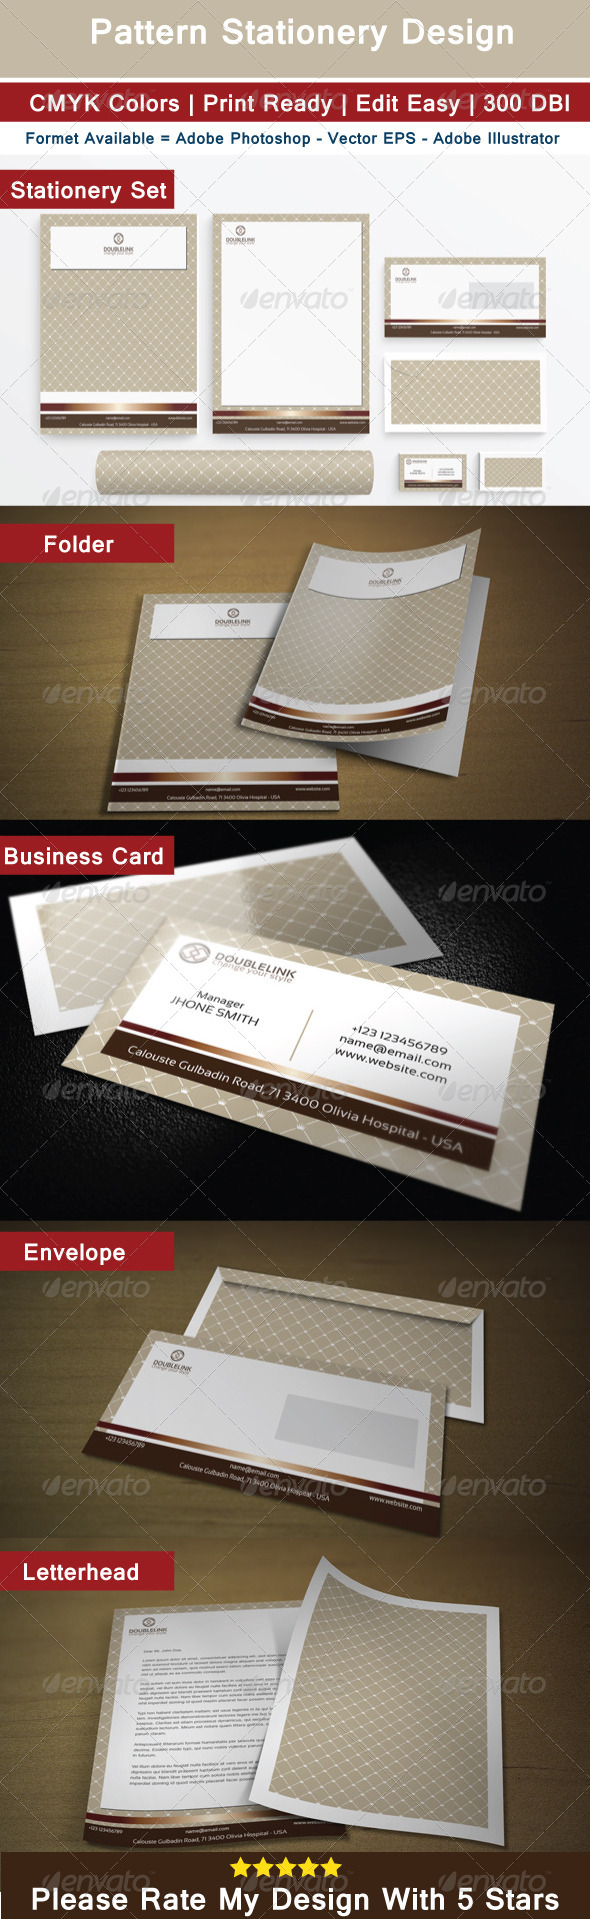 GraphicRiver Pattern Stationery Design 7053489